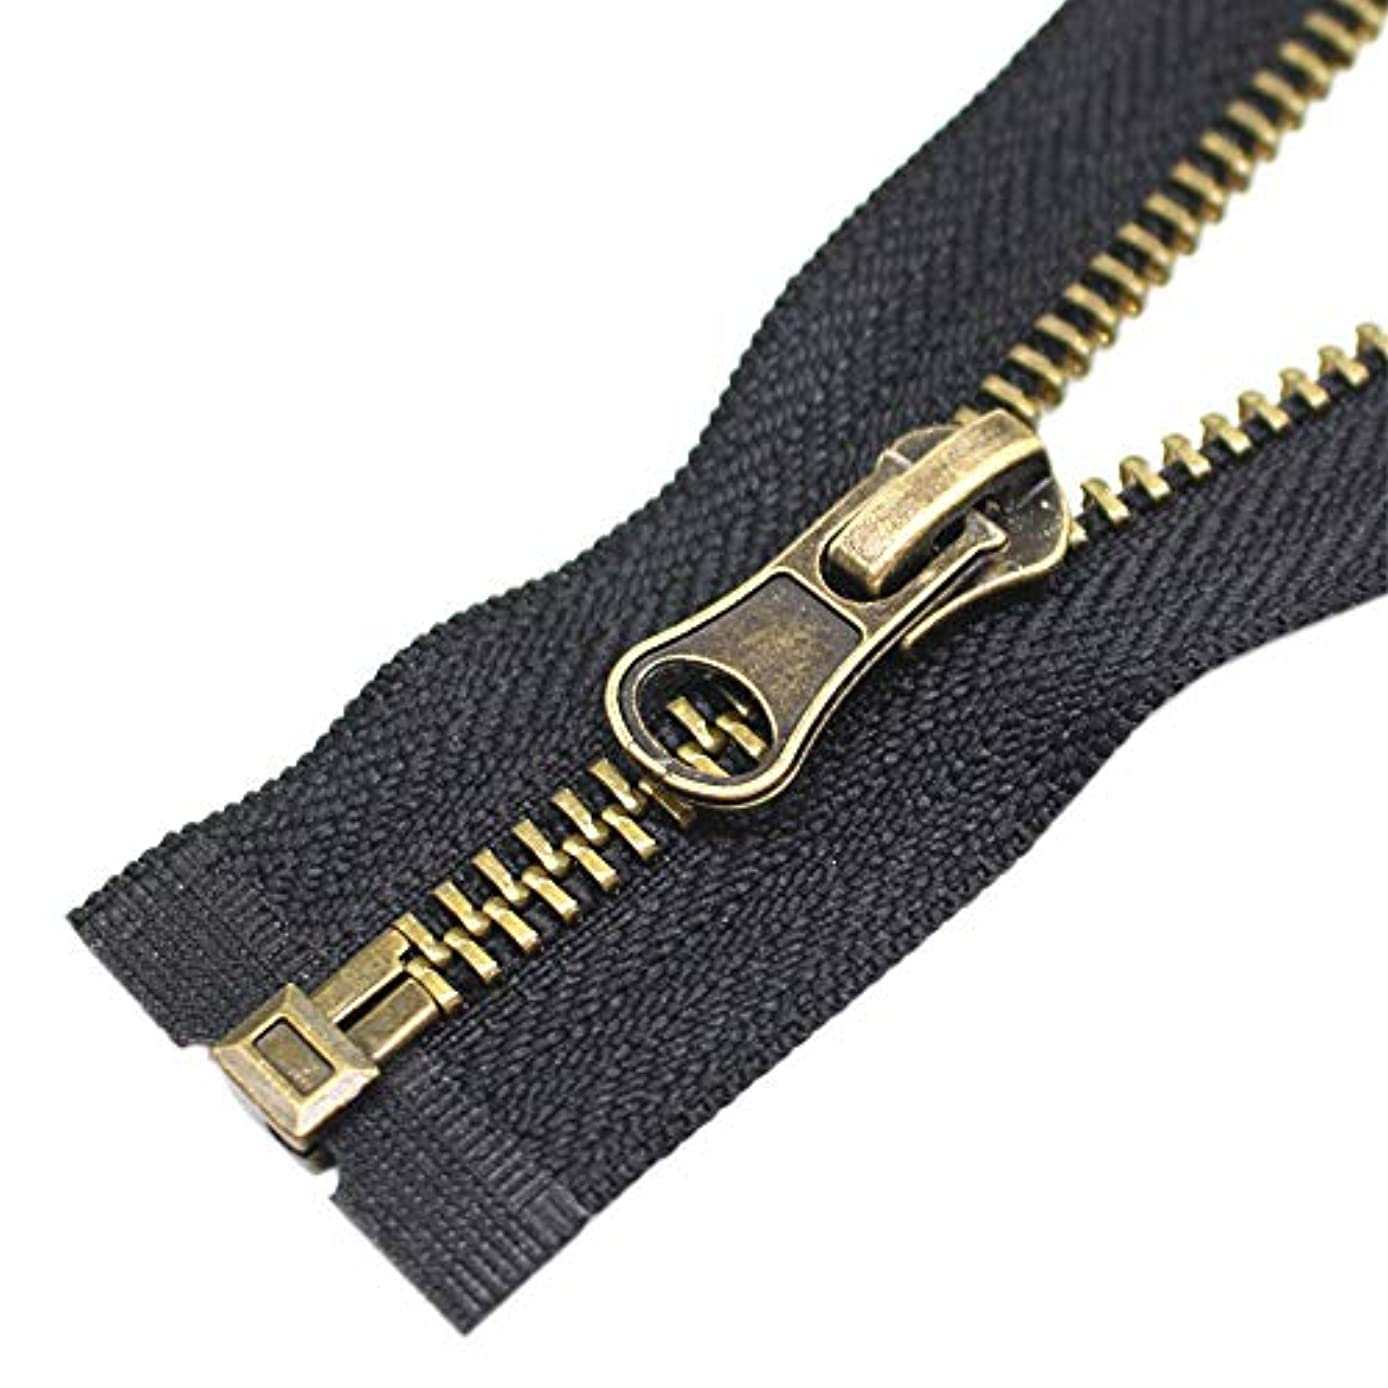 YaHoGa 2PCS #5 28 Inch Antique Brass Separating Jacket Zipper Y-Teeth Metal Zippers for Jackets Sewing Coats Crafts (28